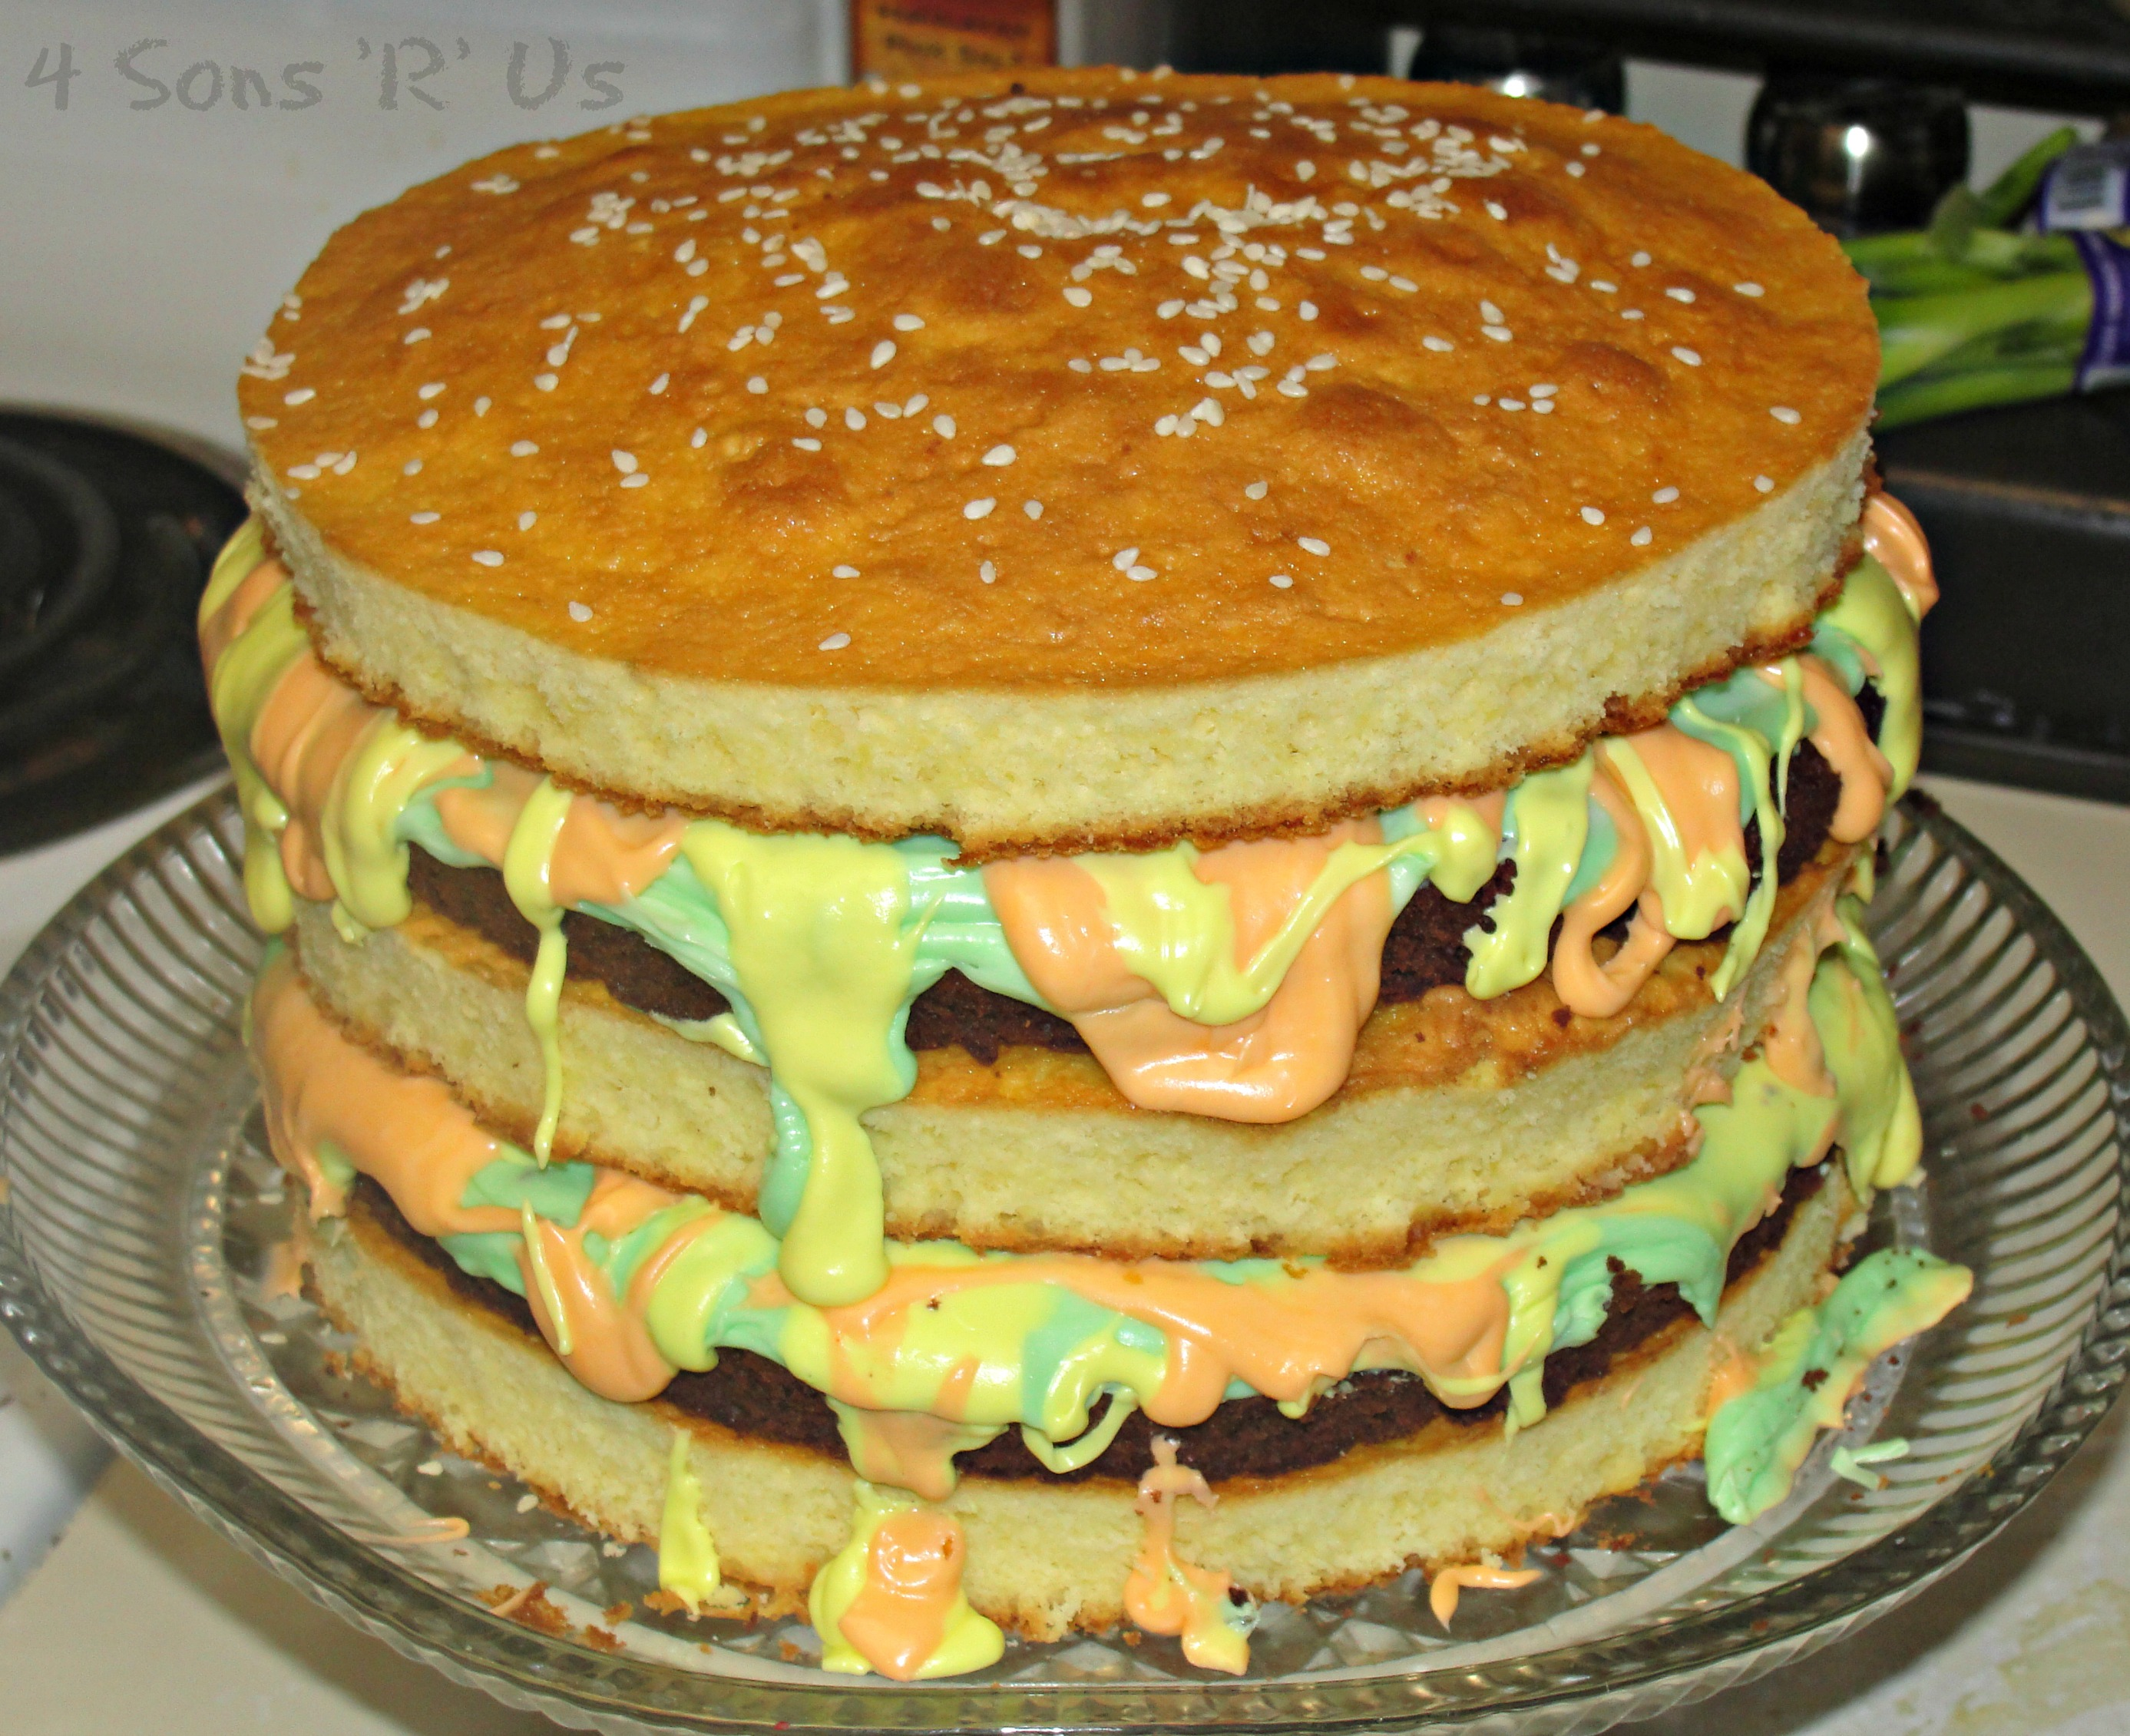 How to make a Big Mac burger cake 4 Sons R Us